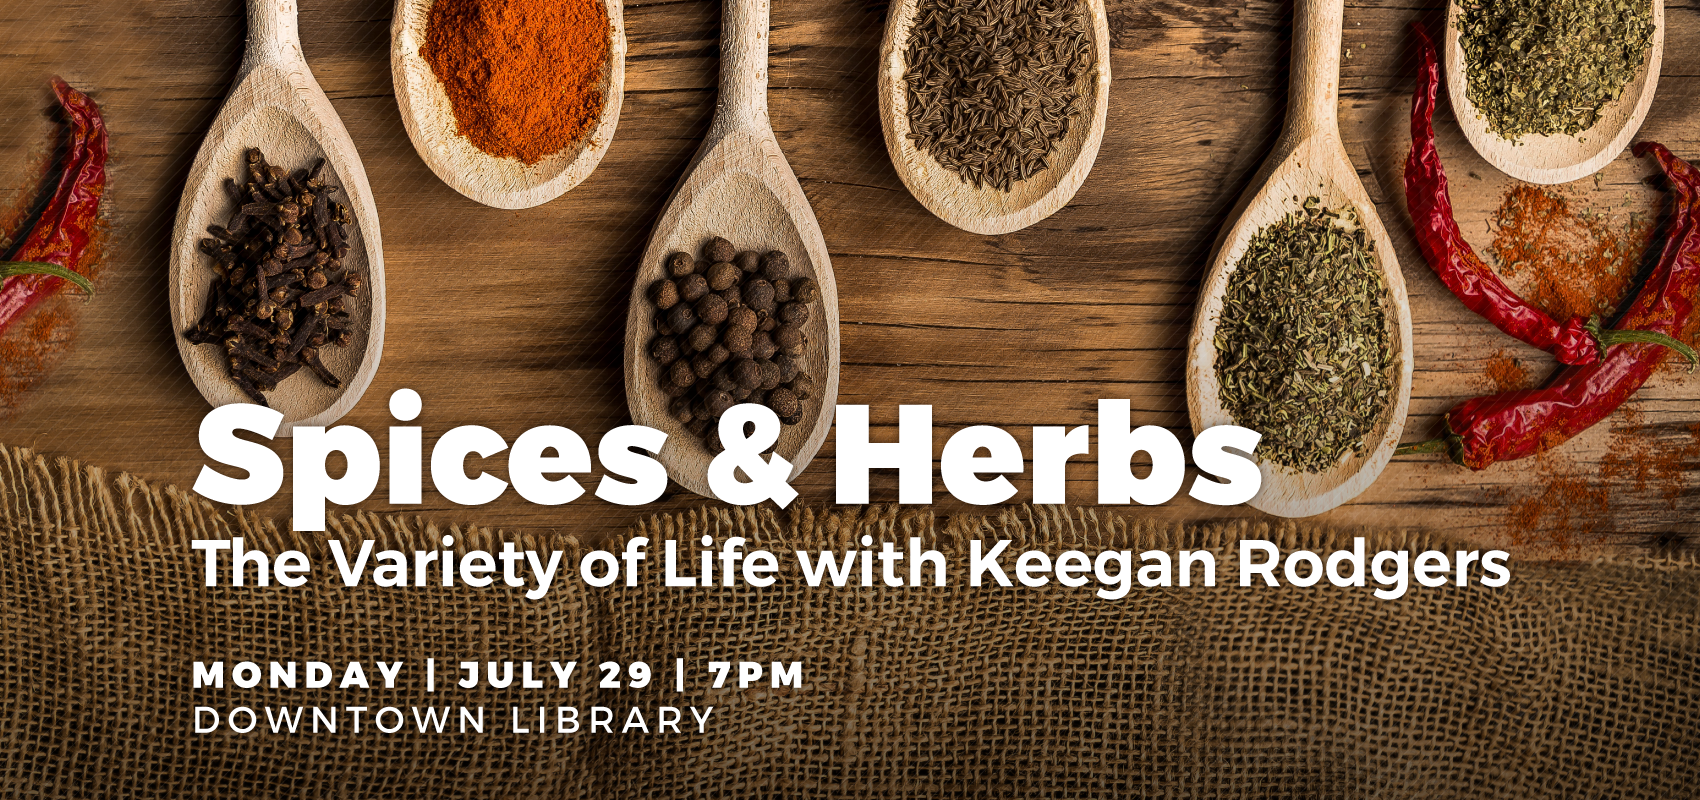 Spices & Herbs - Monday July 29. .